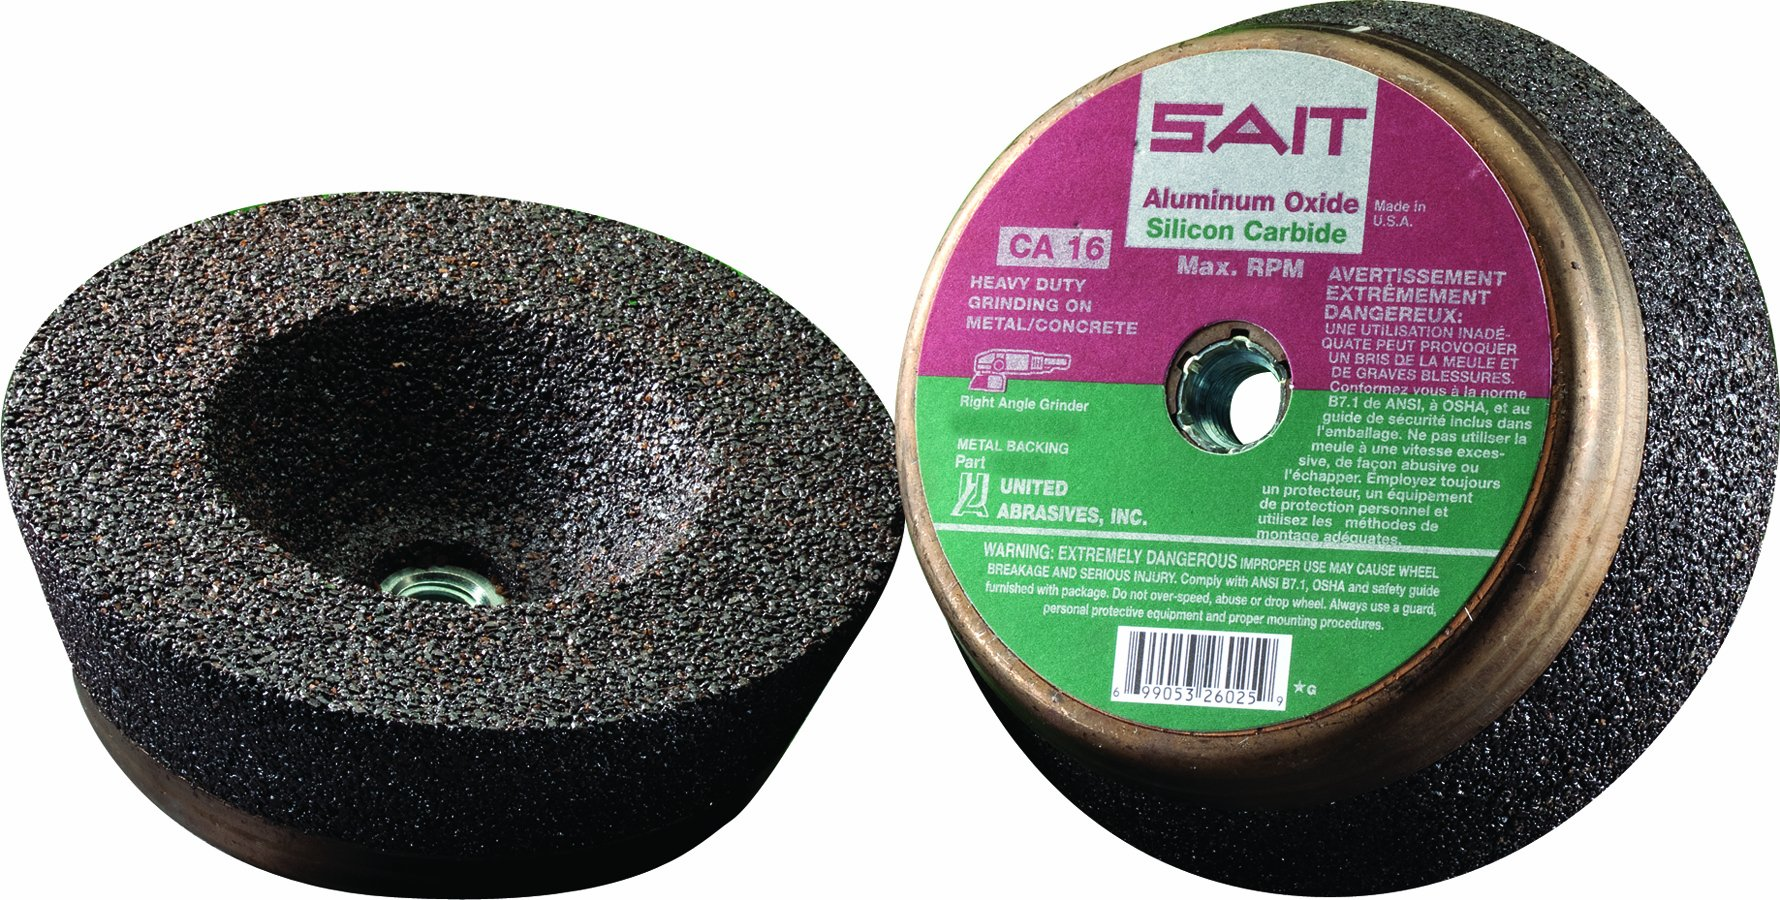 United Abrasives-SAIT 26025 6 by 2 by 5/8-11 CA16 M-B Type 11 Cup Wheel, 5-Pack by United Abrasives- SAIT (Image #1)